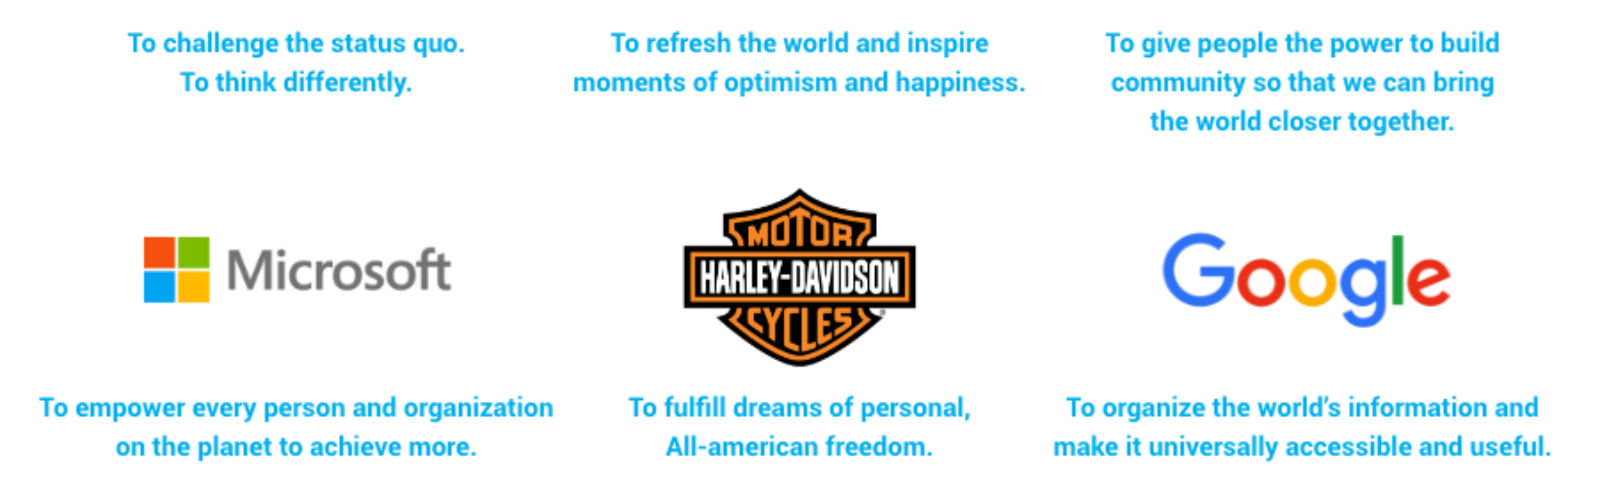 Mission Statements of Top Brands: Apple, Coca-Cola, Facebook, Microsoft, Harley-Davidson, Google, Disney, Tesla andStarbucks.